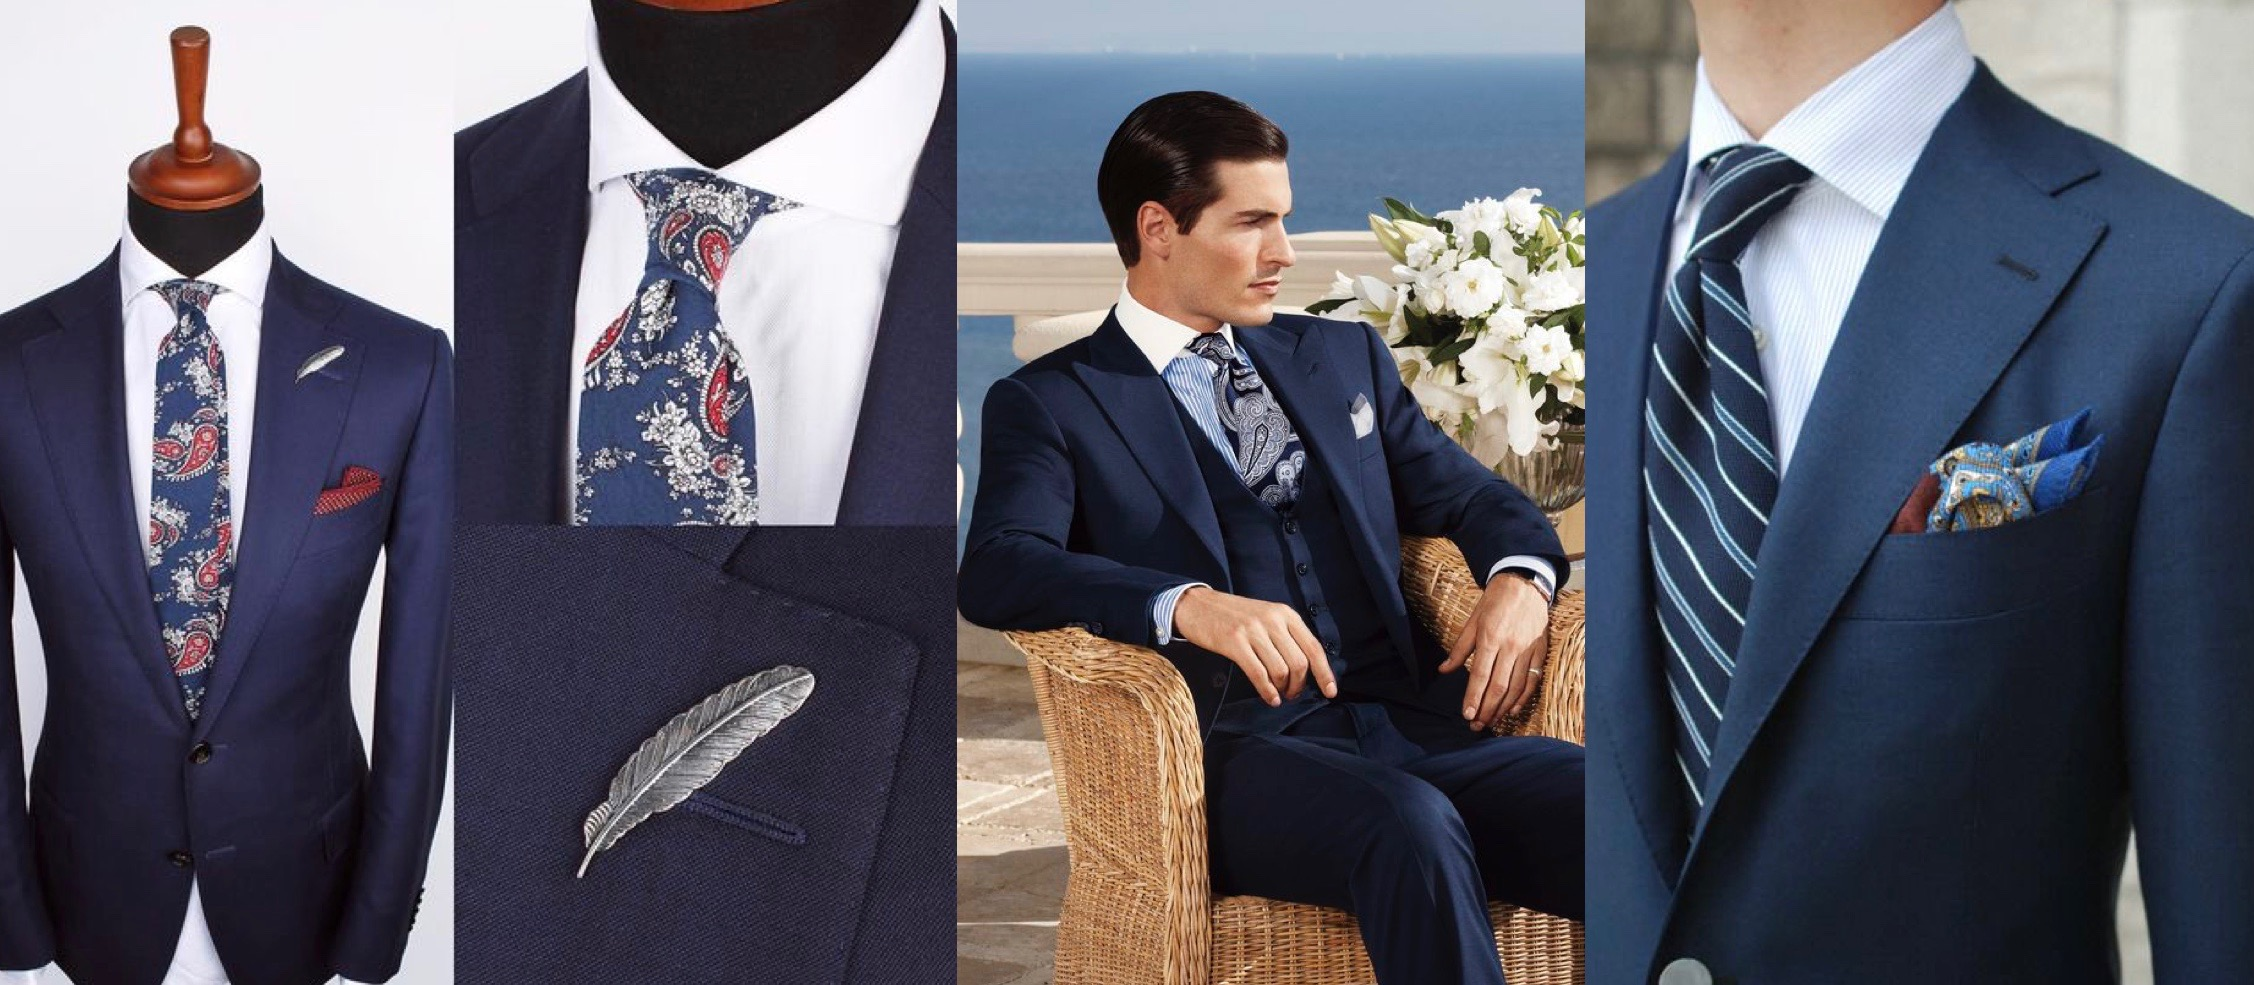 Pattern Ties and Navy Suits.jpg